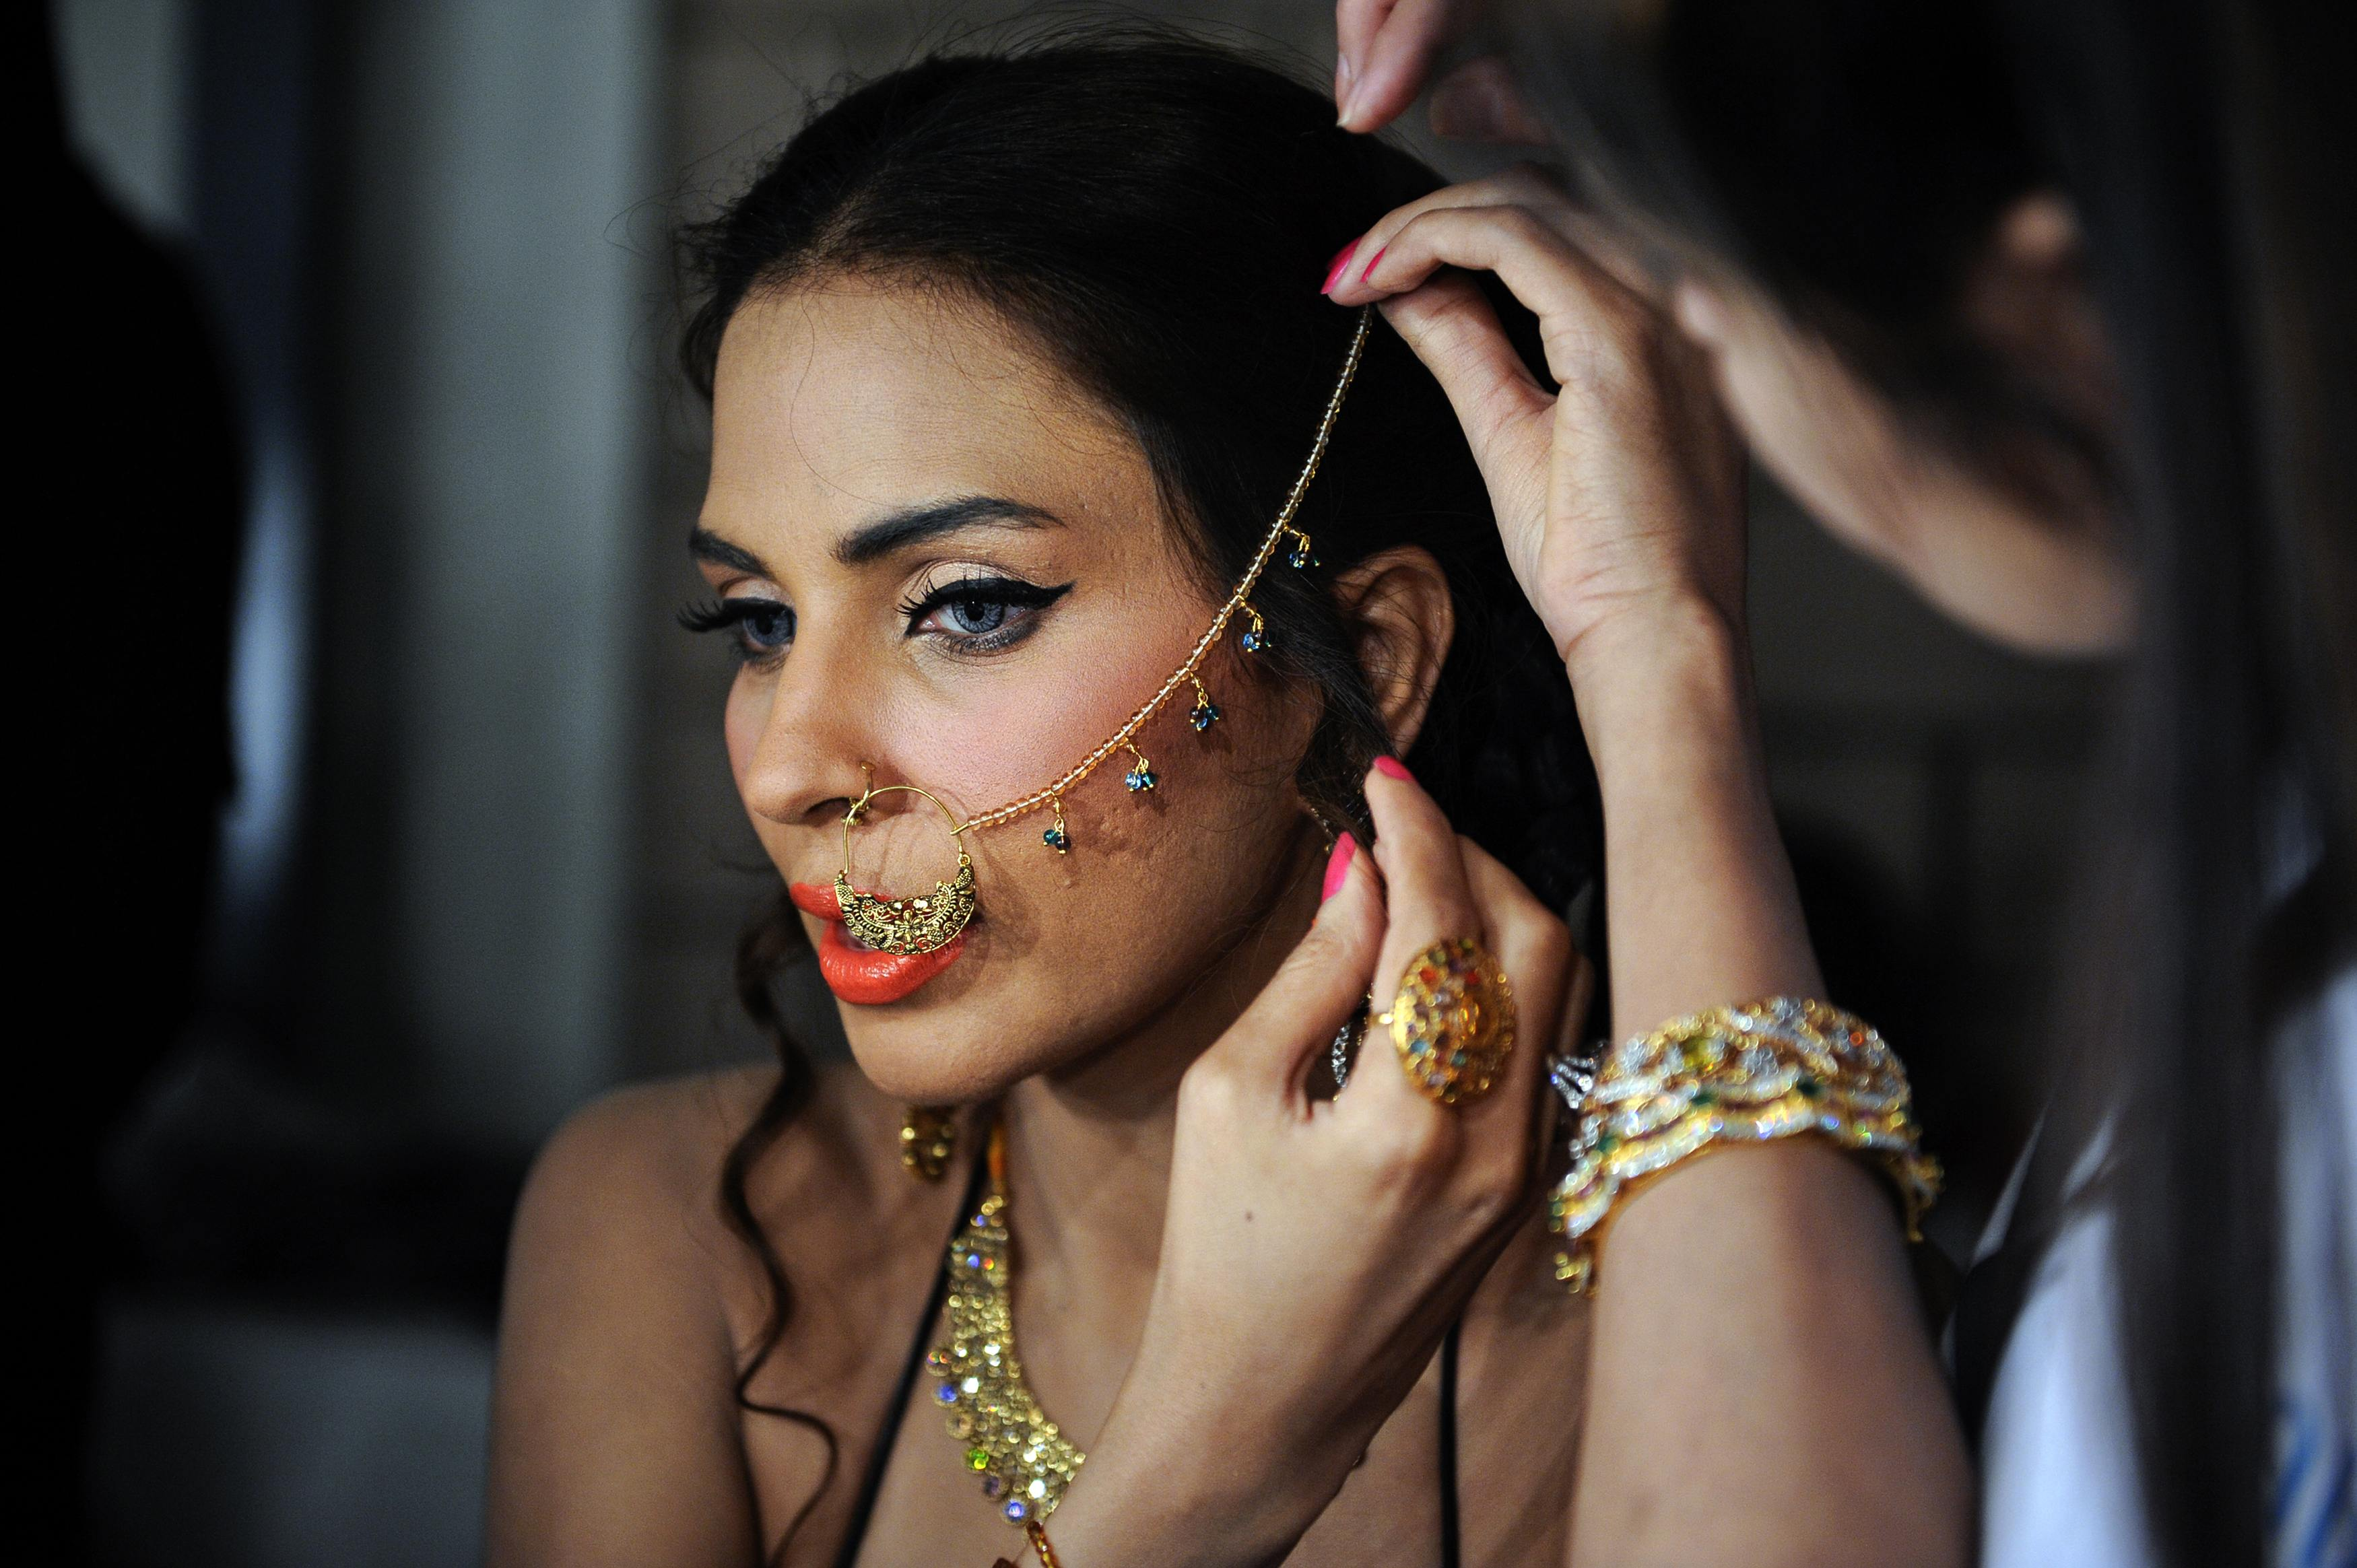 Model Fauzia wears traditional bridal jewellery as she prepares to take to the catwalk on the first day of the Bridal Couture Week in Karachi April 19, 2013.— Reuters Photo